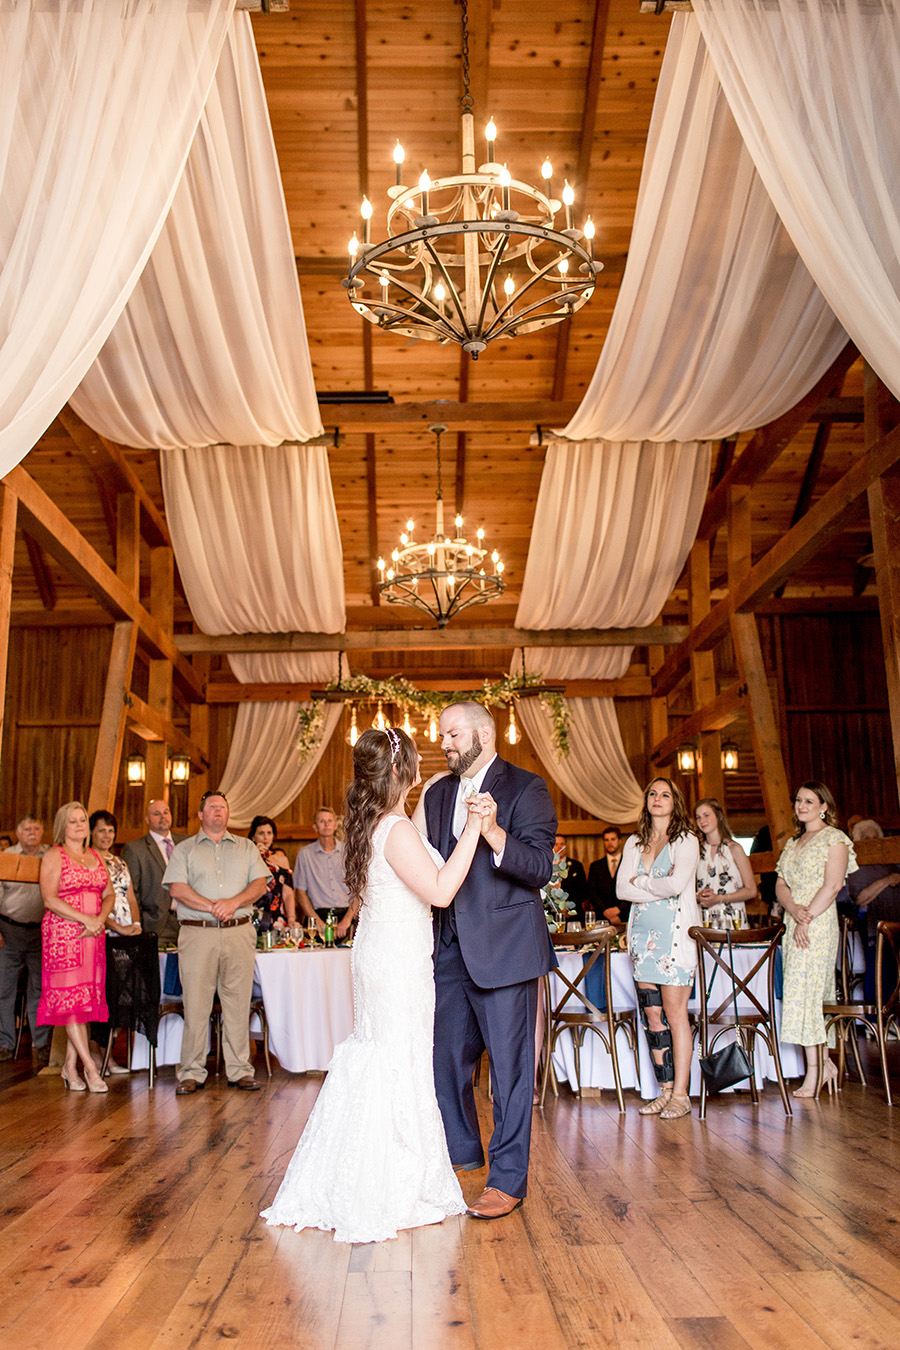 couple shares their first dance in the barn